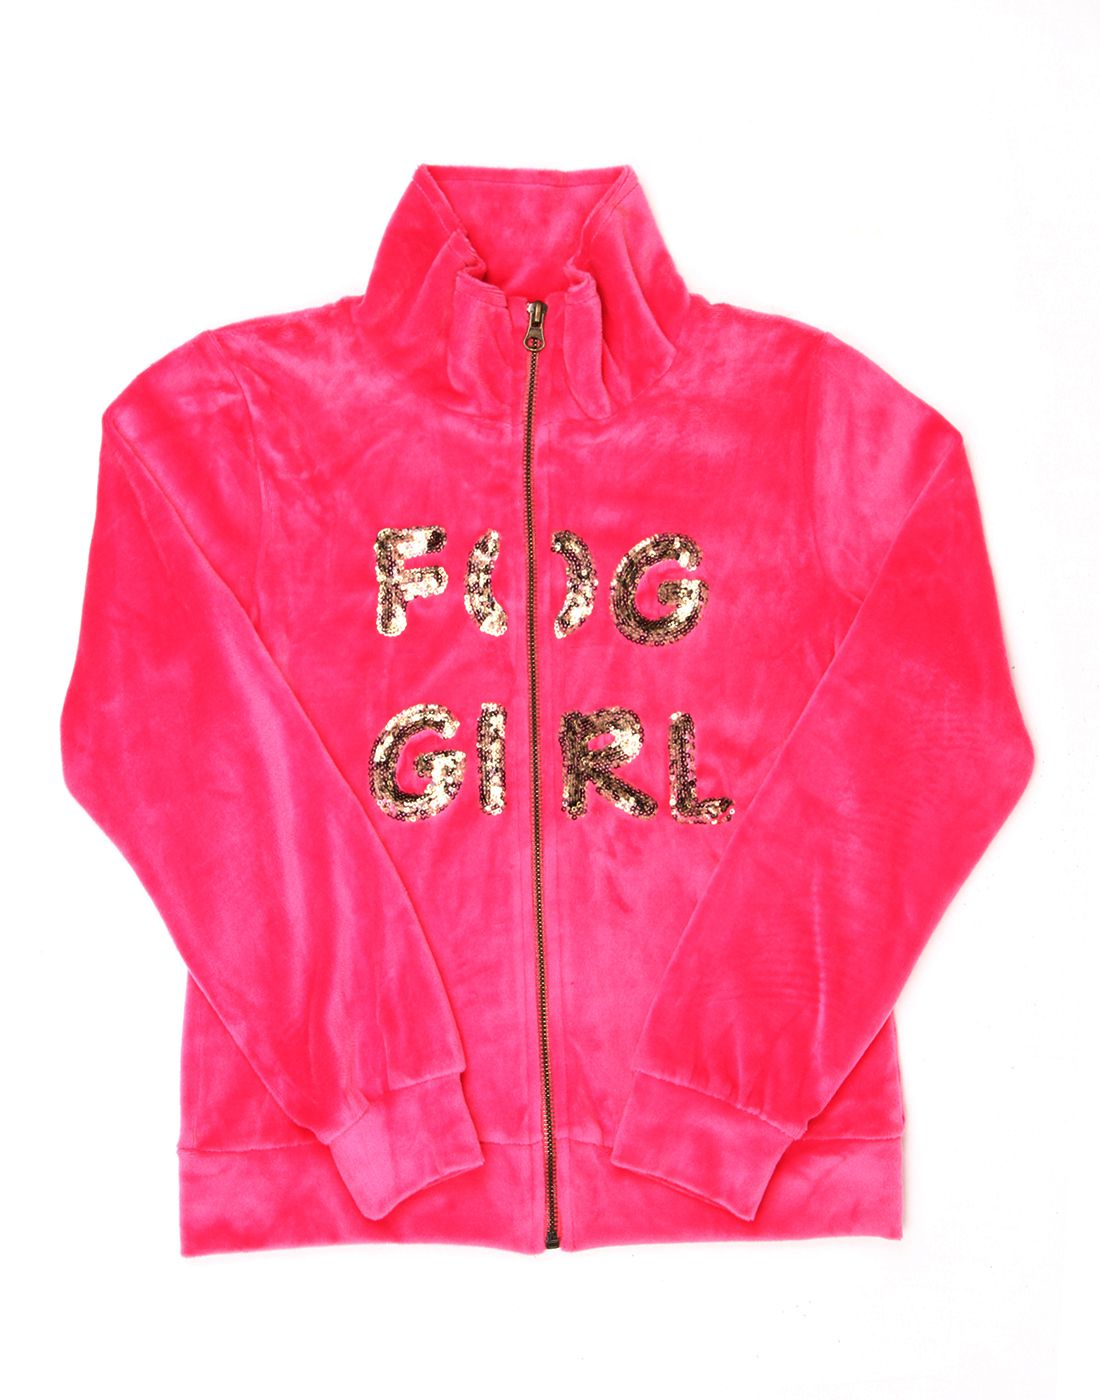 London Fog Girls Pink Full Sleeve Jacket